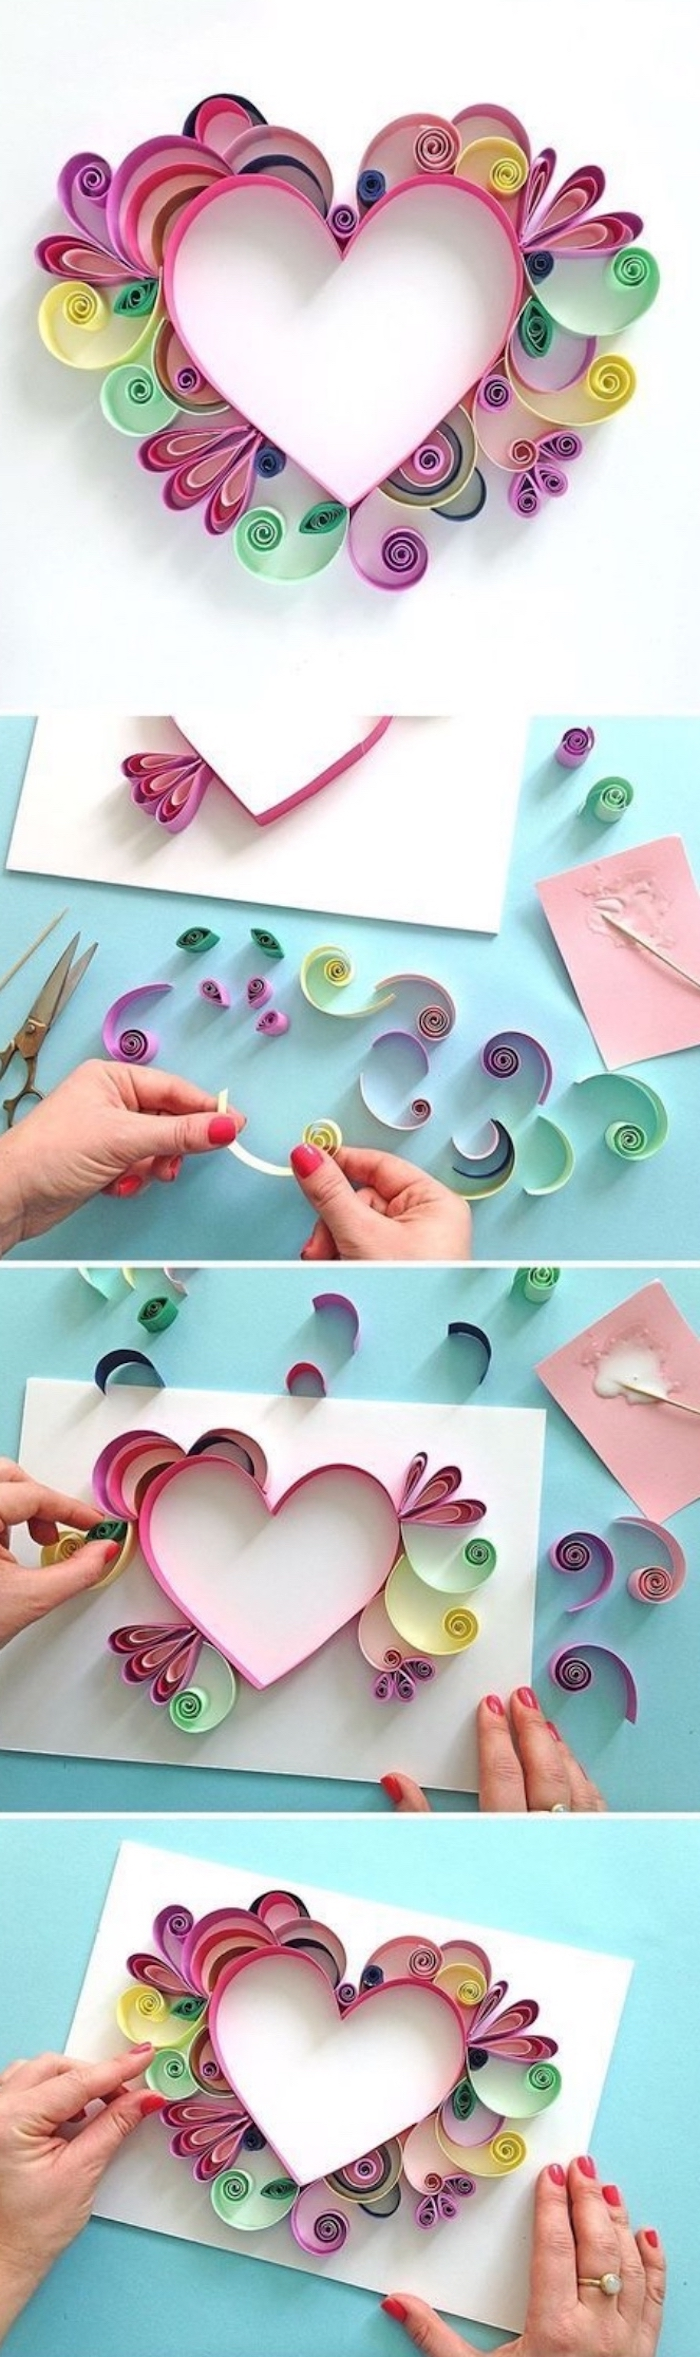 kindergarten classroom games, paper quilling, heart made of paper, on white paper, diy tutorial